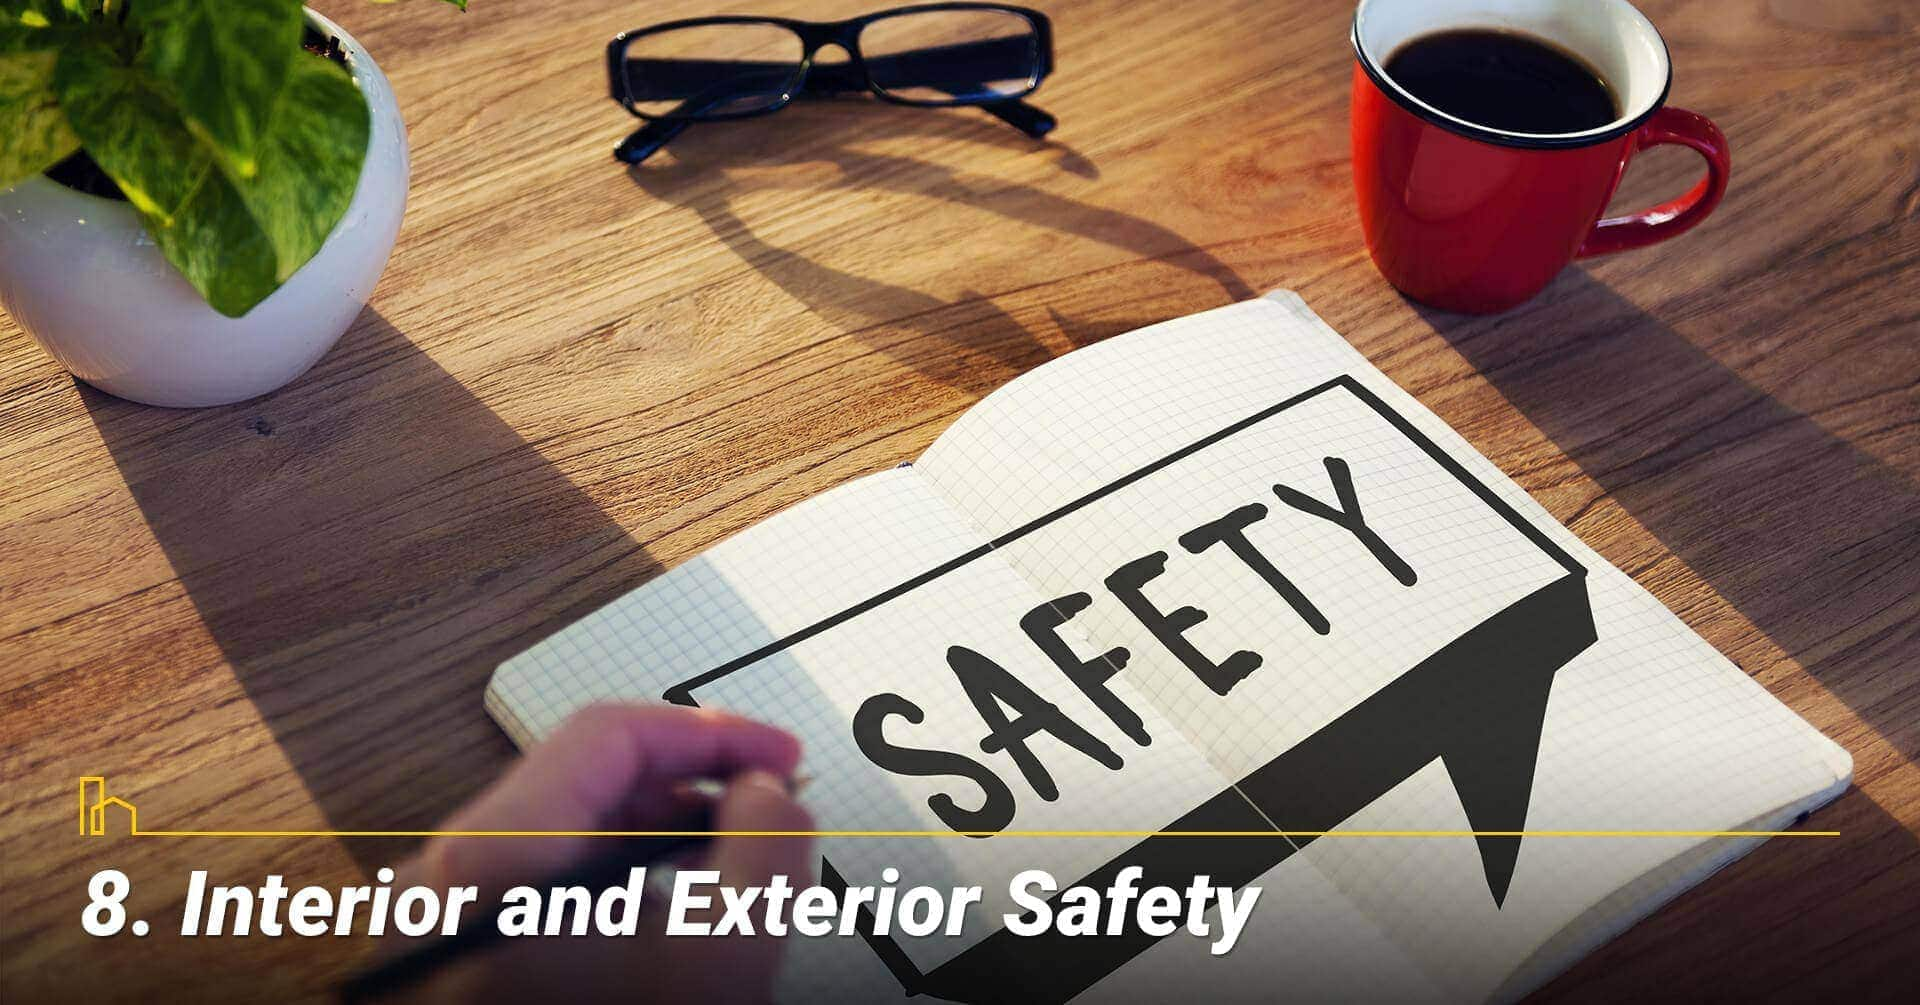 Interior and Exterior Safety